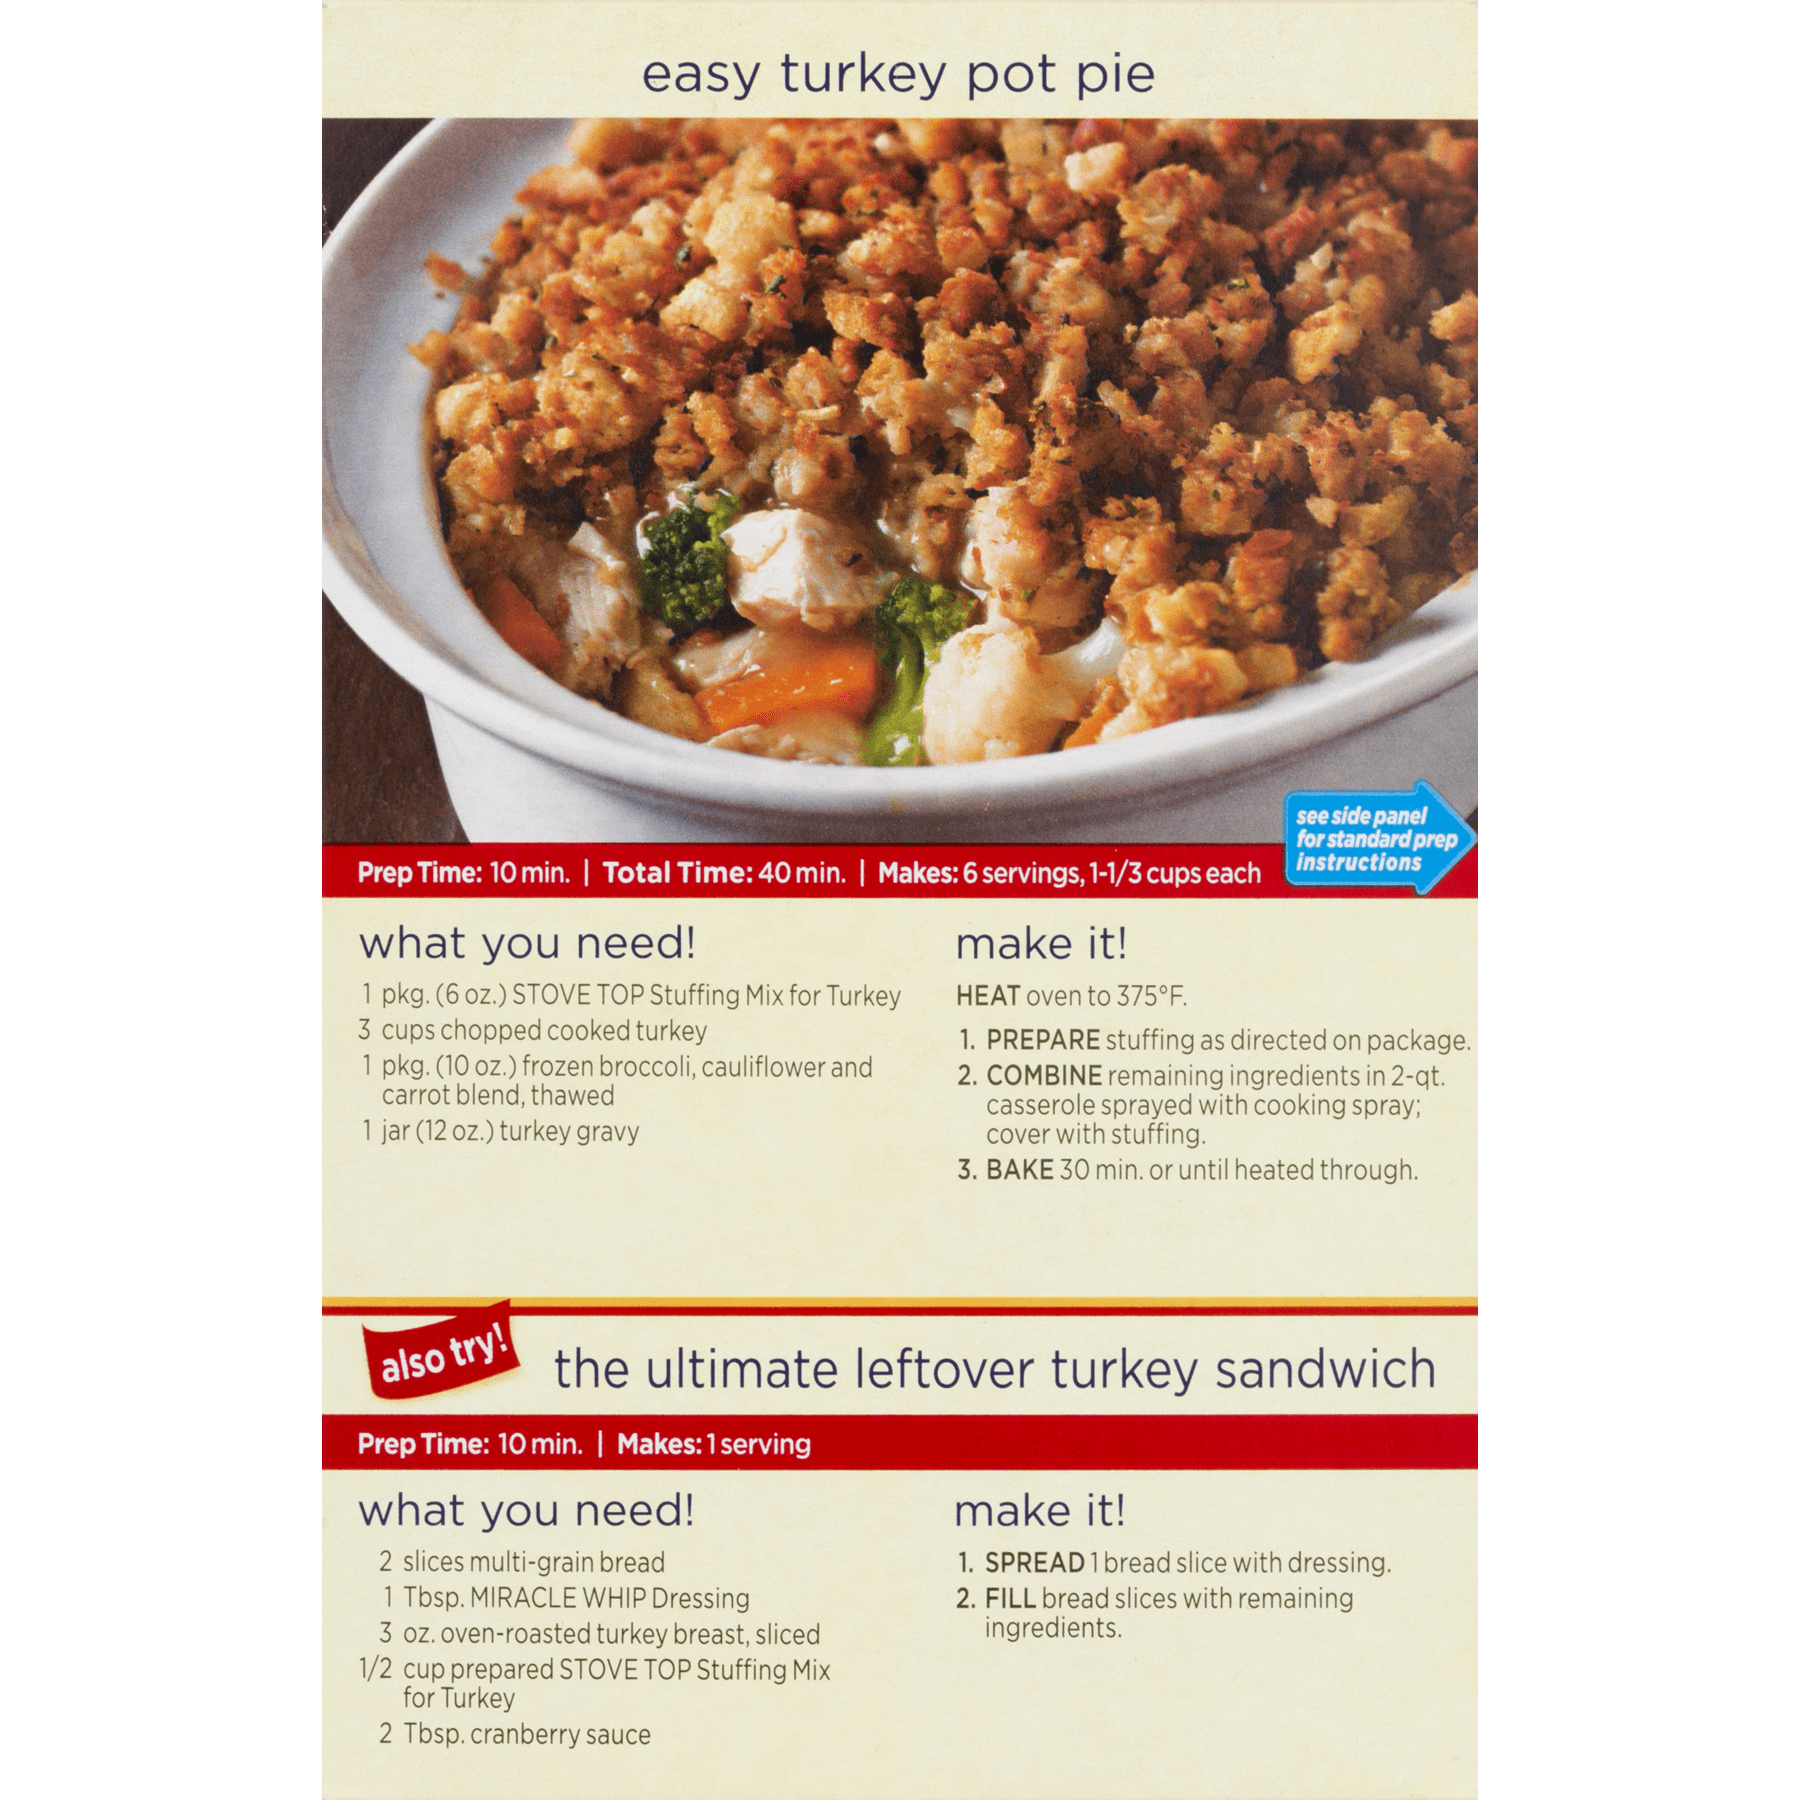 stove top stuffing. kraft for turkey stove top stuffing mix, 6 oz (pack of 2) - walmart.com